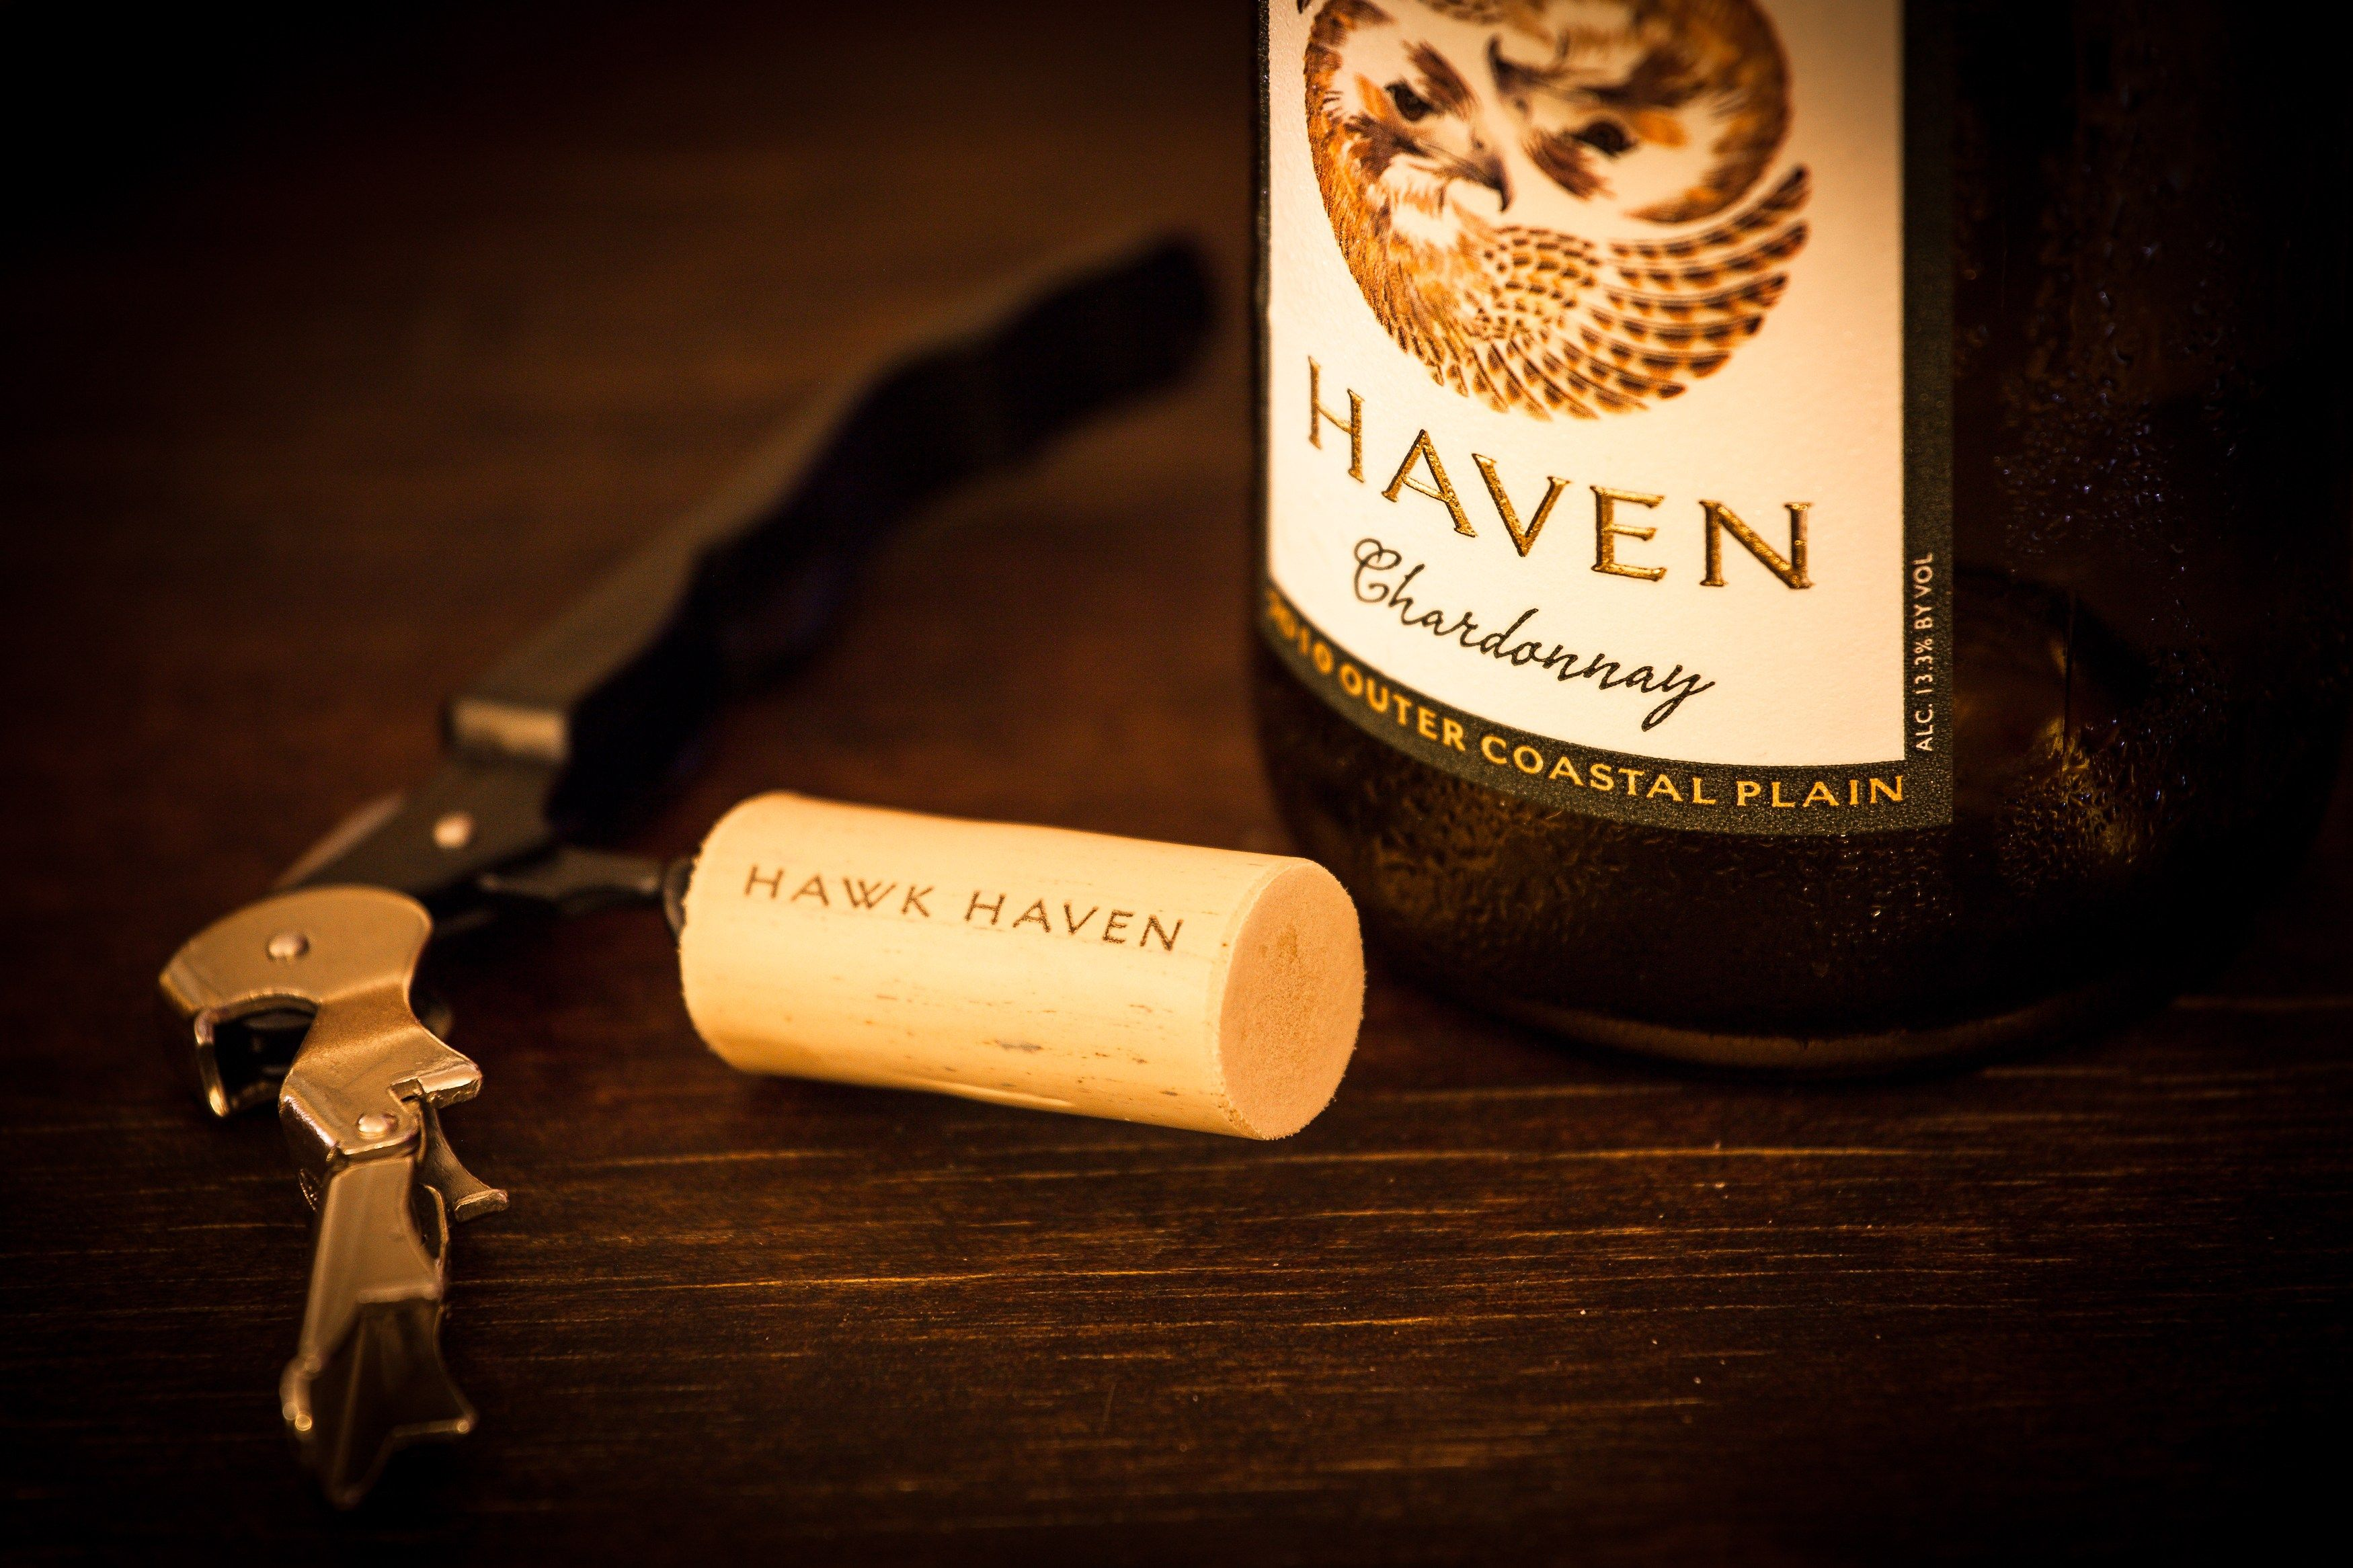 Hawk Haven Vineyard & Winery Rio Grand, Nj Wine